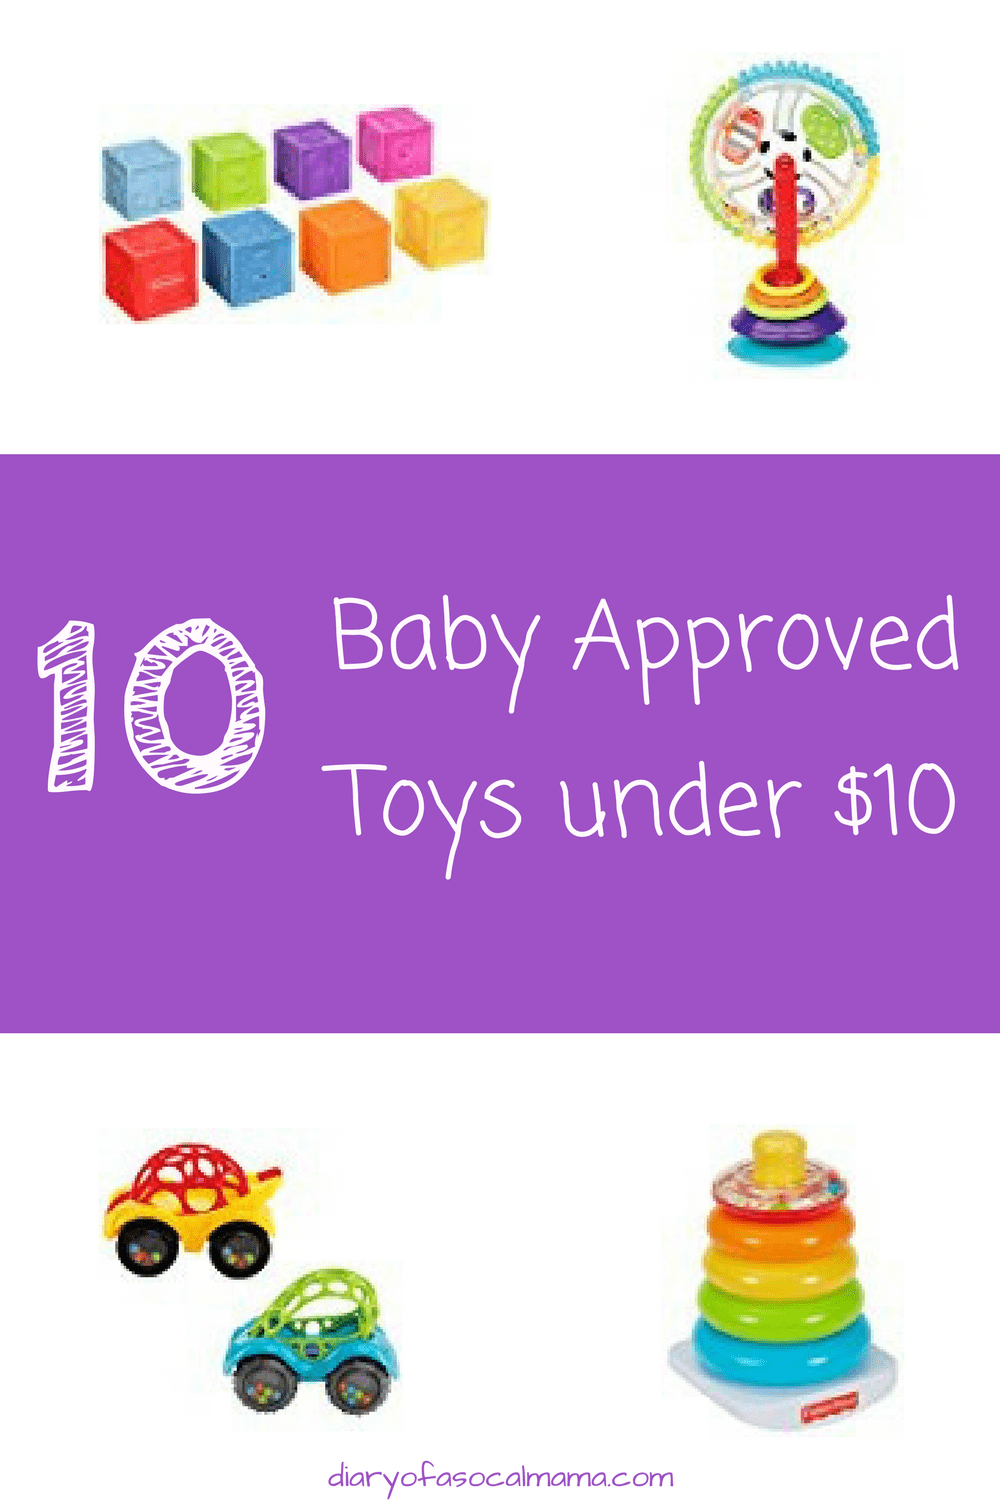 Baby toys under $10